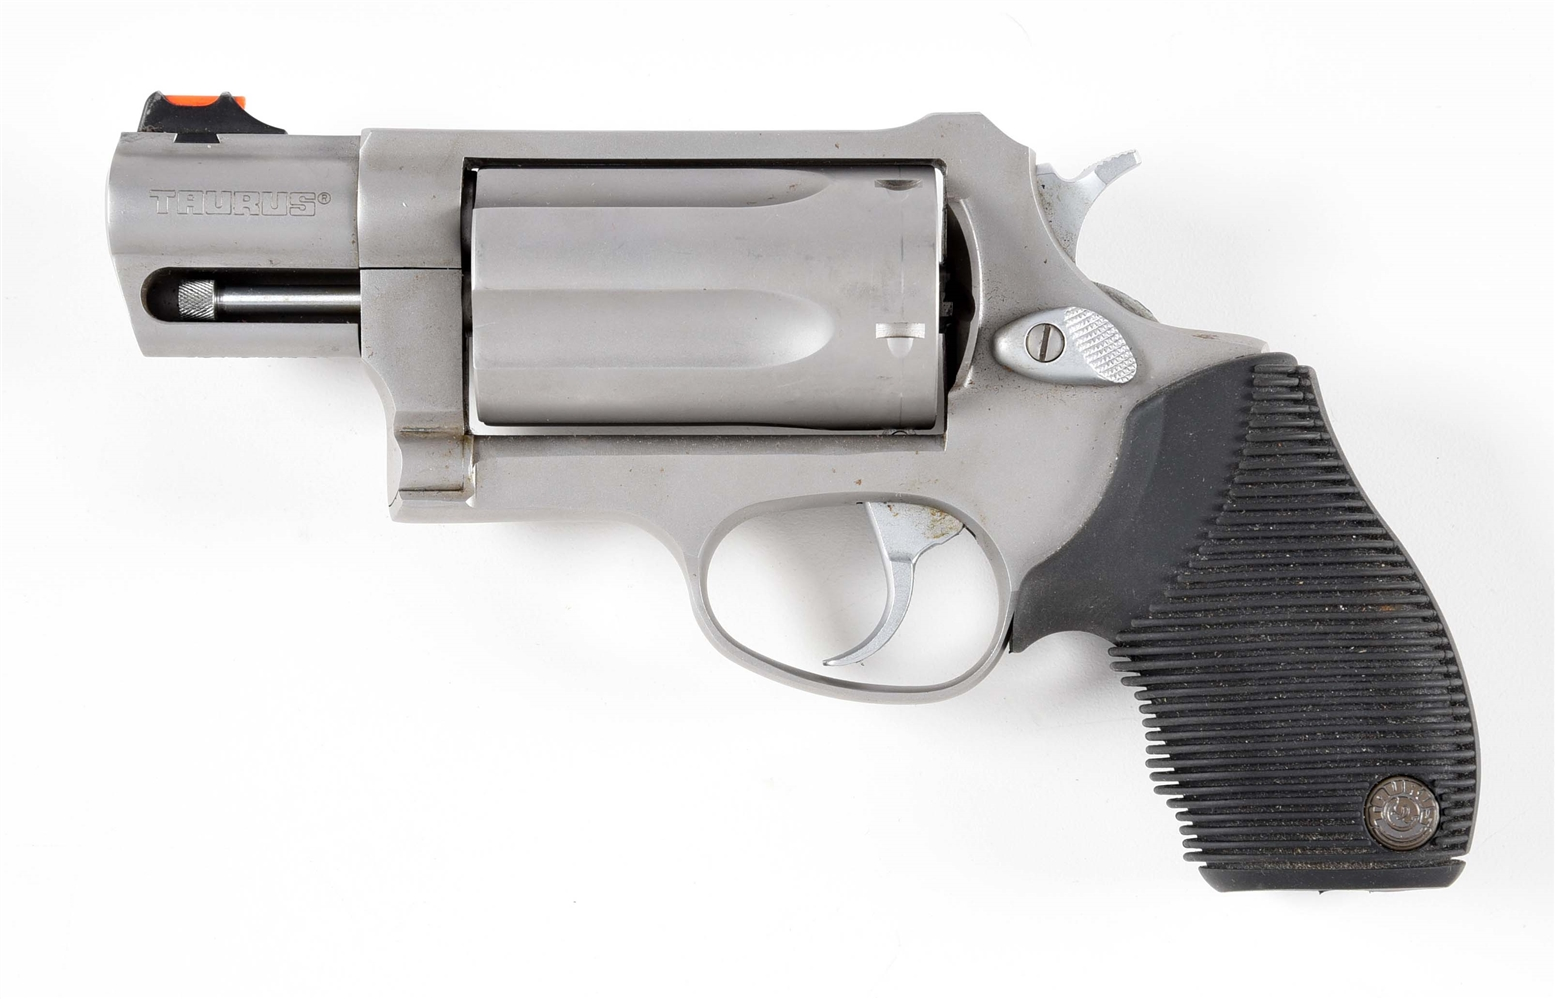 (M) TAURUS PUBLIC DEFENDER DOUBLE ACTION REVOLVER WITH FACTORY BOX.